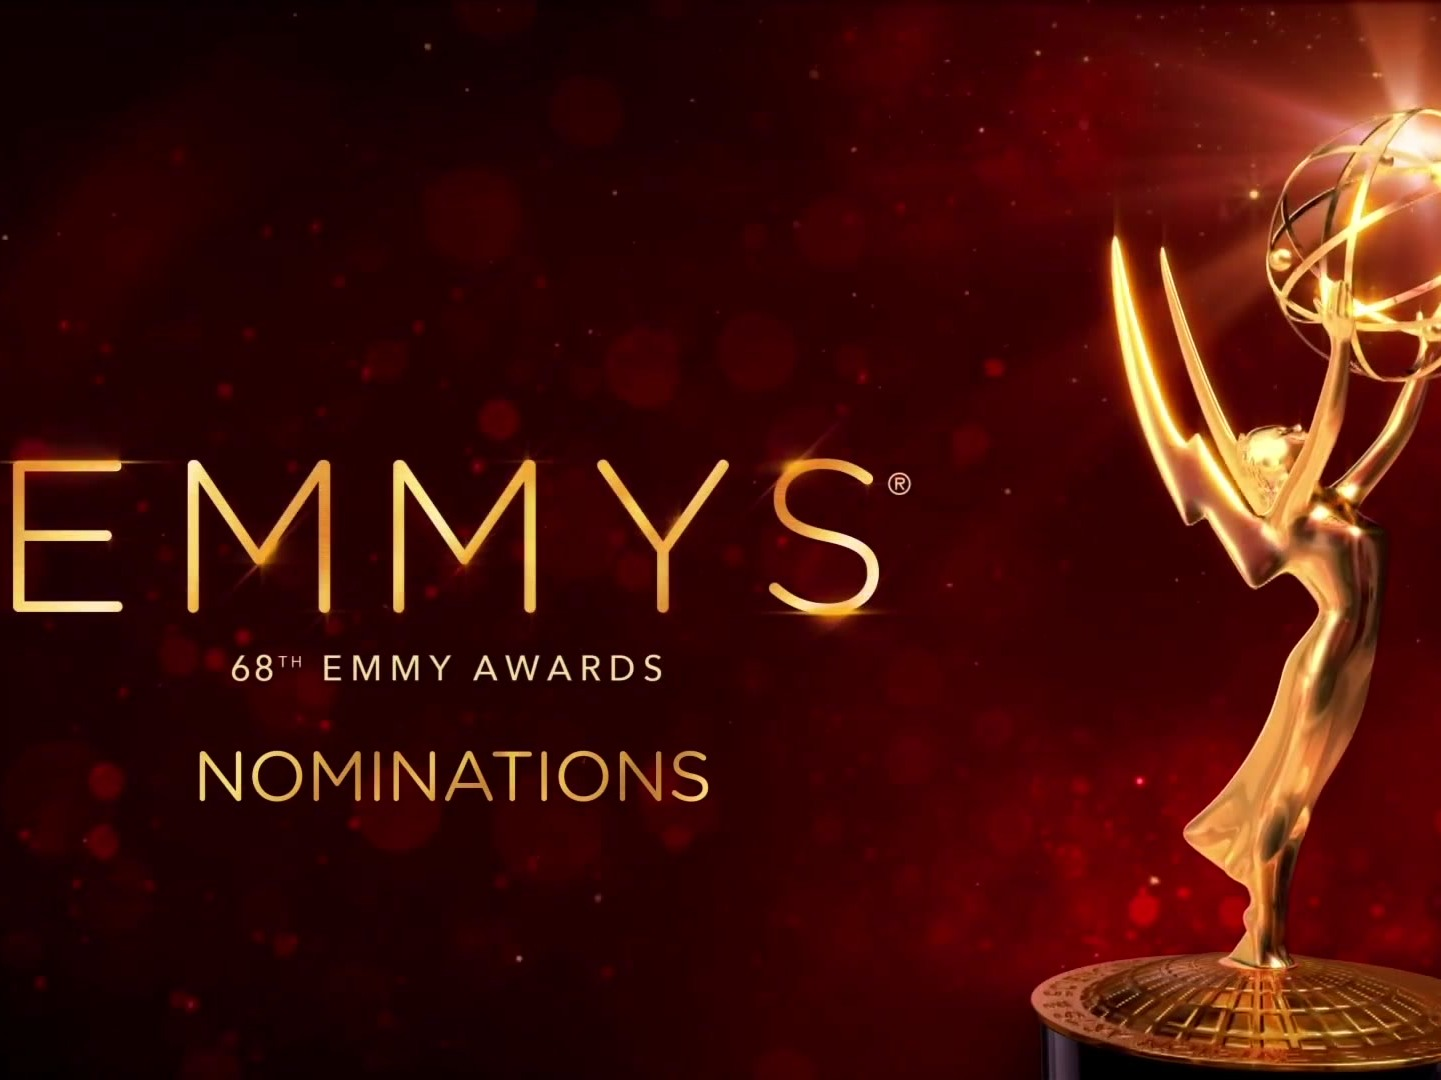 68th Emmy Award Nominations, 68th Emmy Award, Emmy Award, HBO, Game of Thrones, R.R. Martin, Actor Peter Dinklage, Kit Harington, Jon Snow, GoT, Lena Headey, Emilia Clarke, Best Actress, Maisie Williams, Arya Stark, Sansa aka Sophie Turner, Sophie Turner,